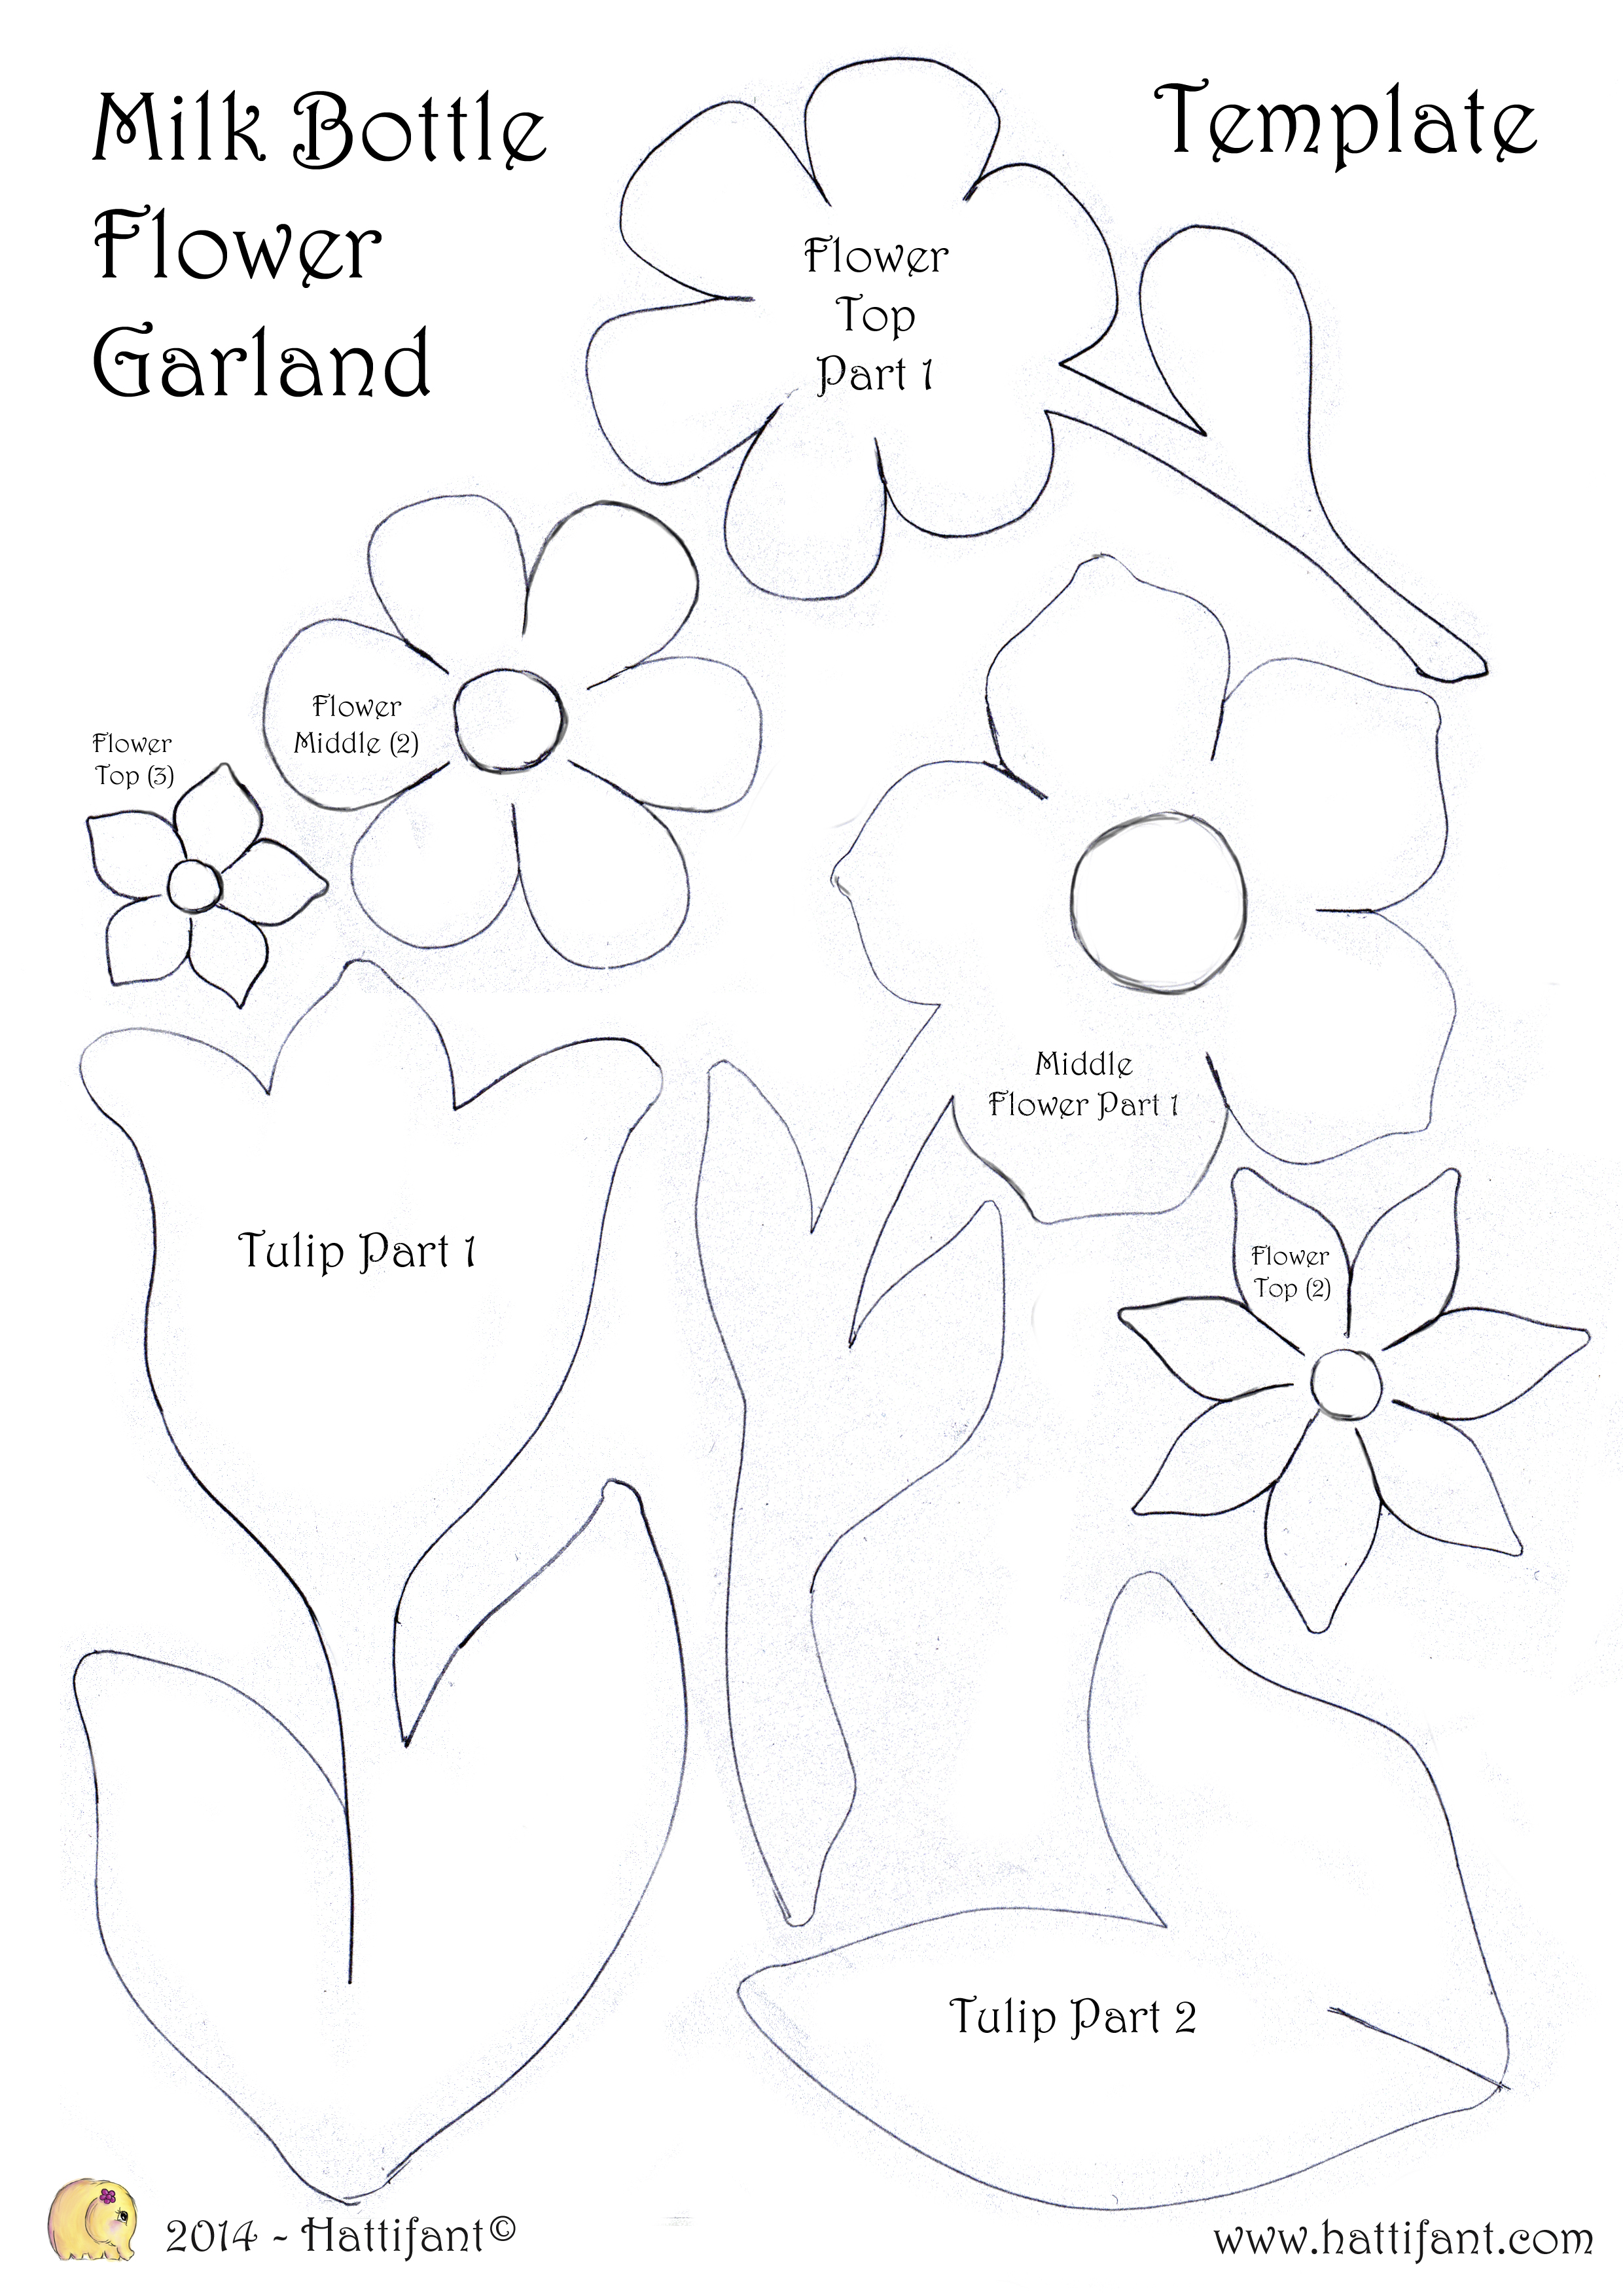 Flower Garland Drawing At Getdrawings Free For Personal Use